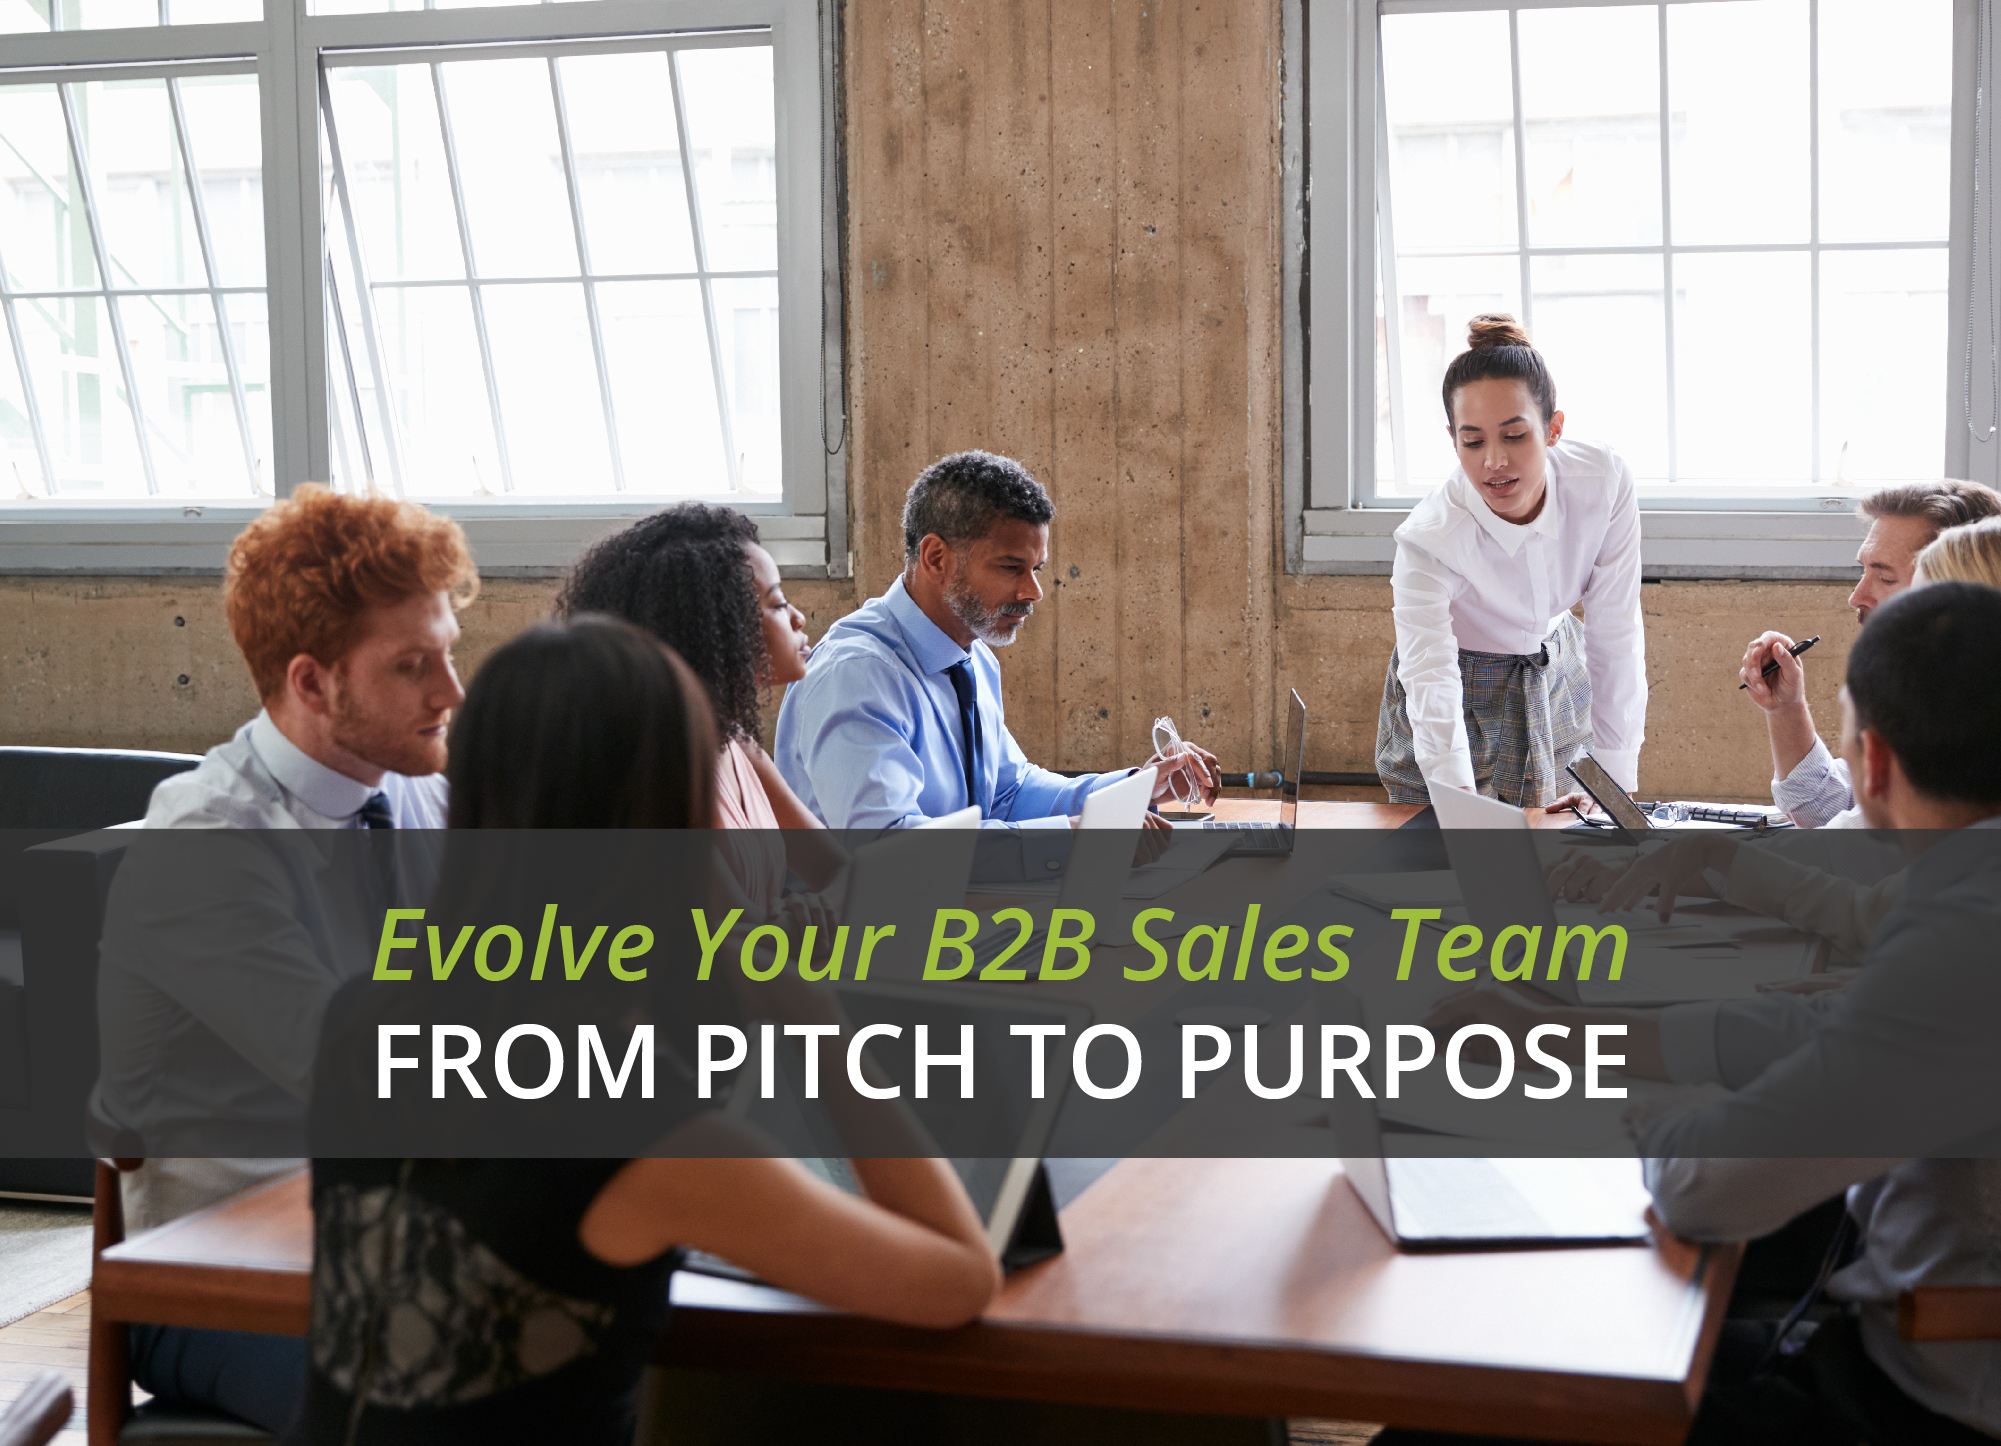 Evolve Your B2B Sales Team From Pitch to Purpose